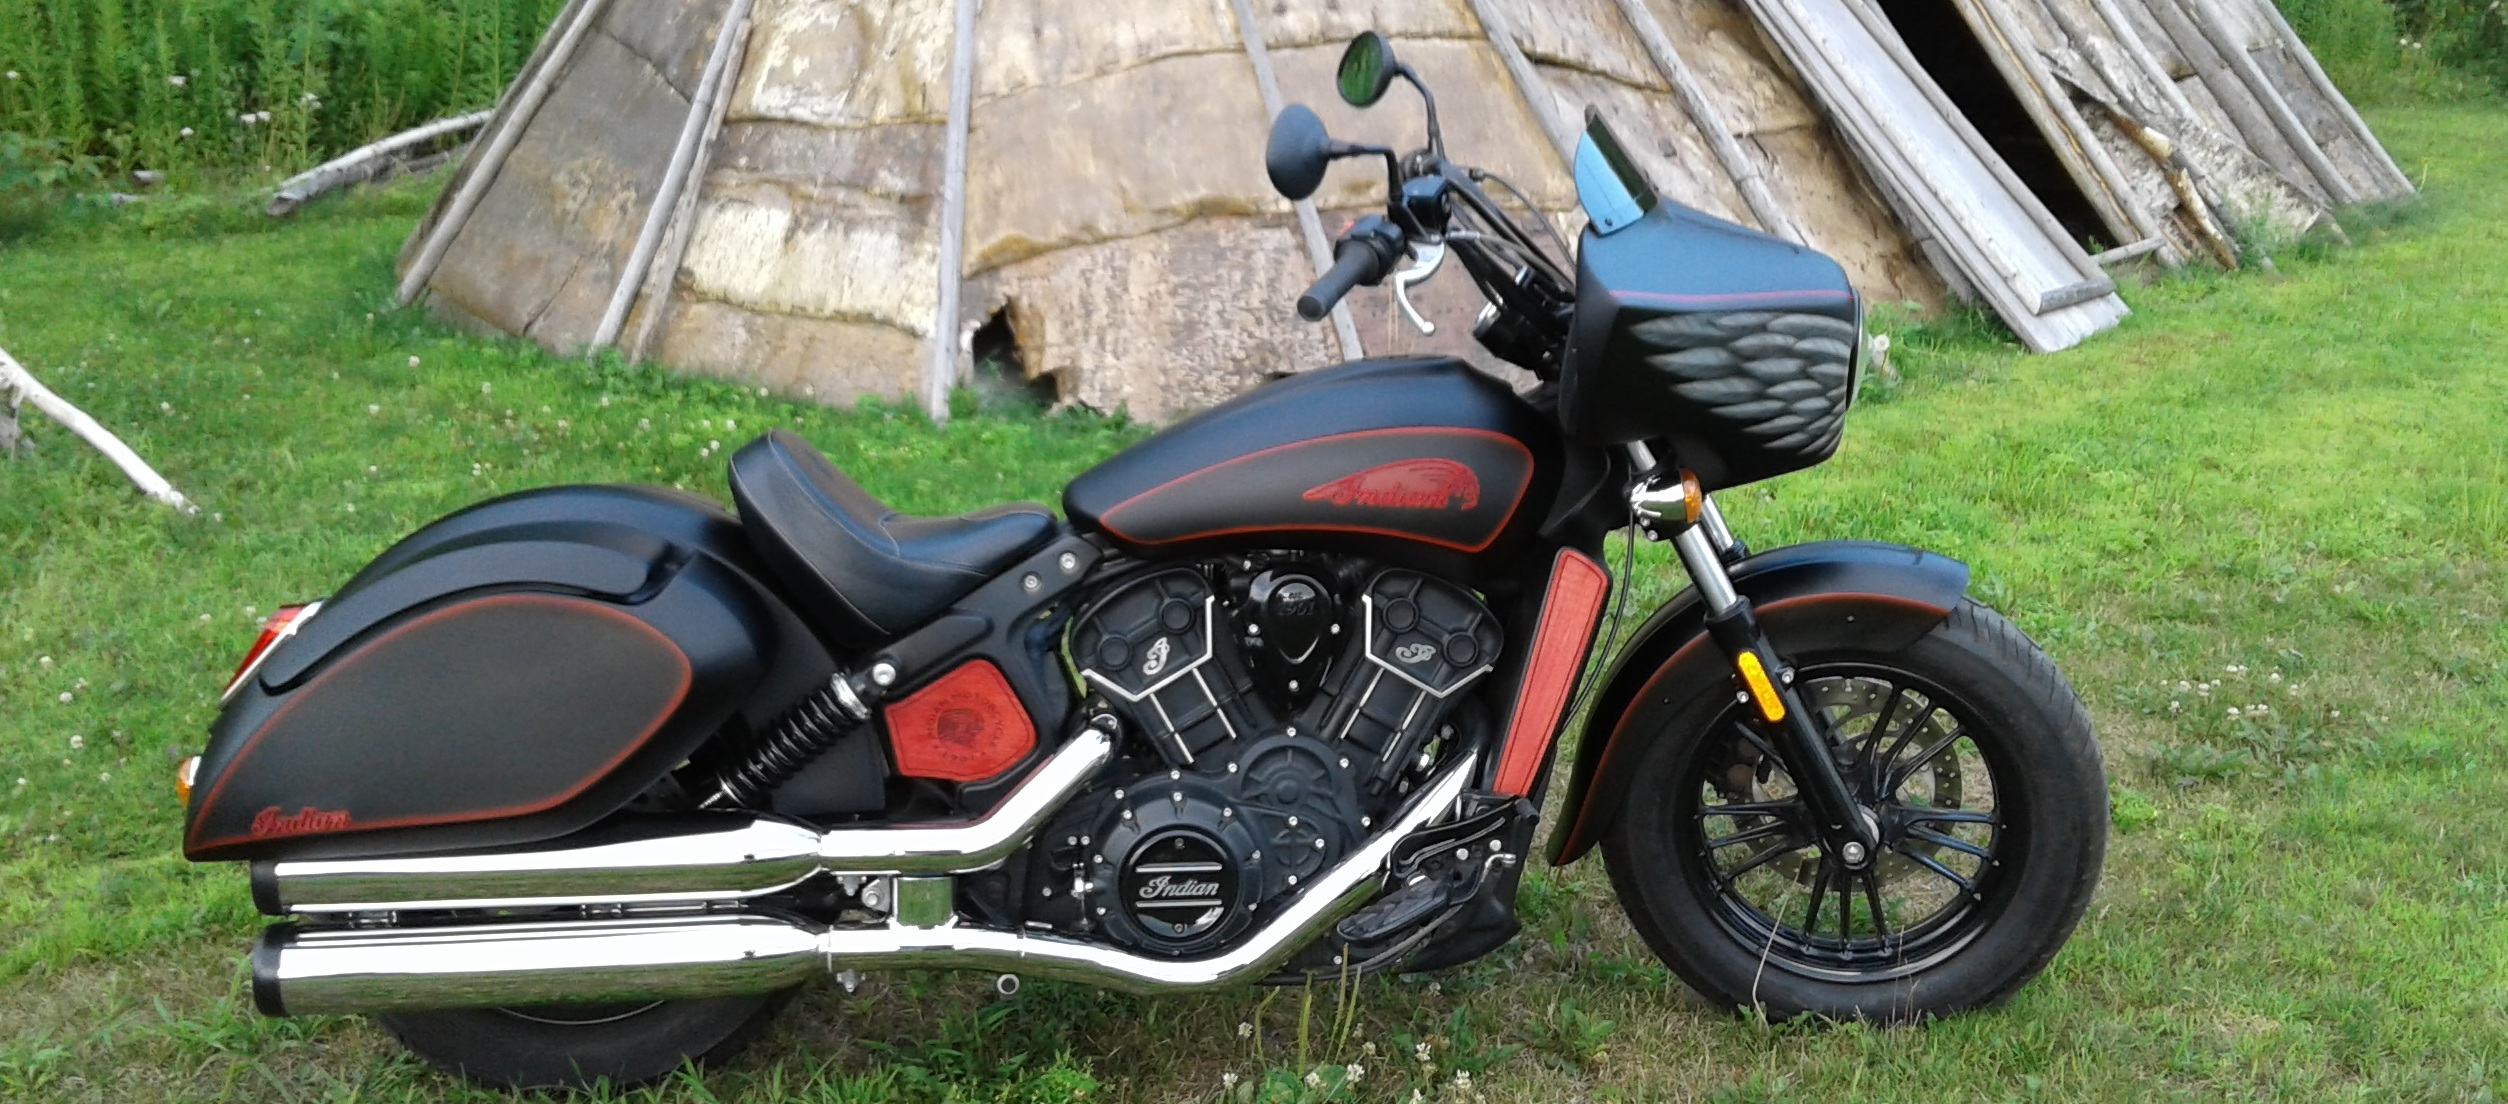 INDIAN SCOUT & SIXTY FAIRING